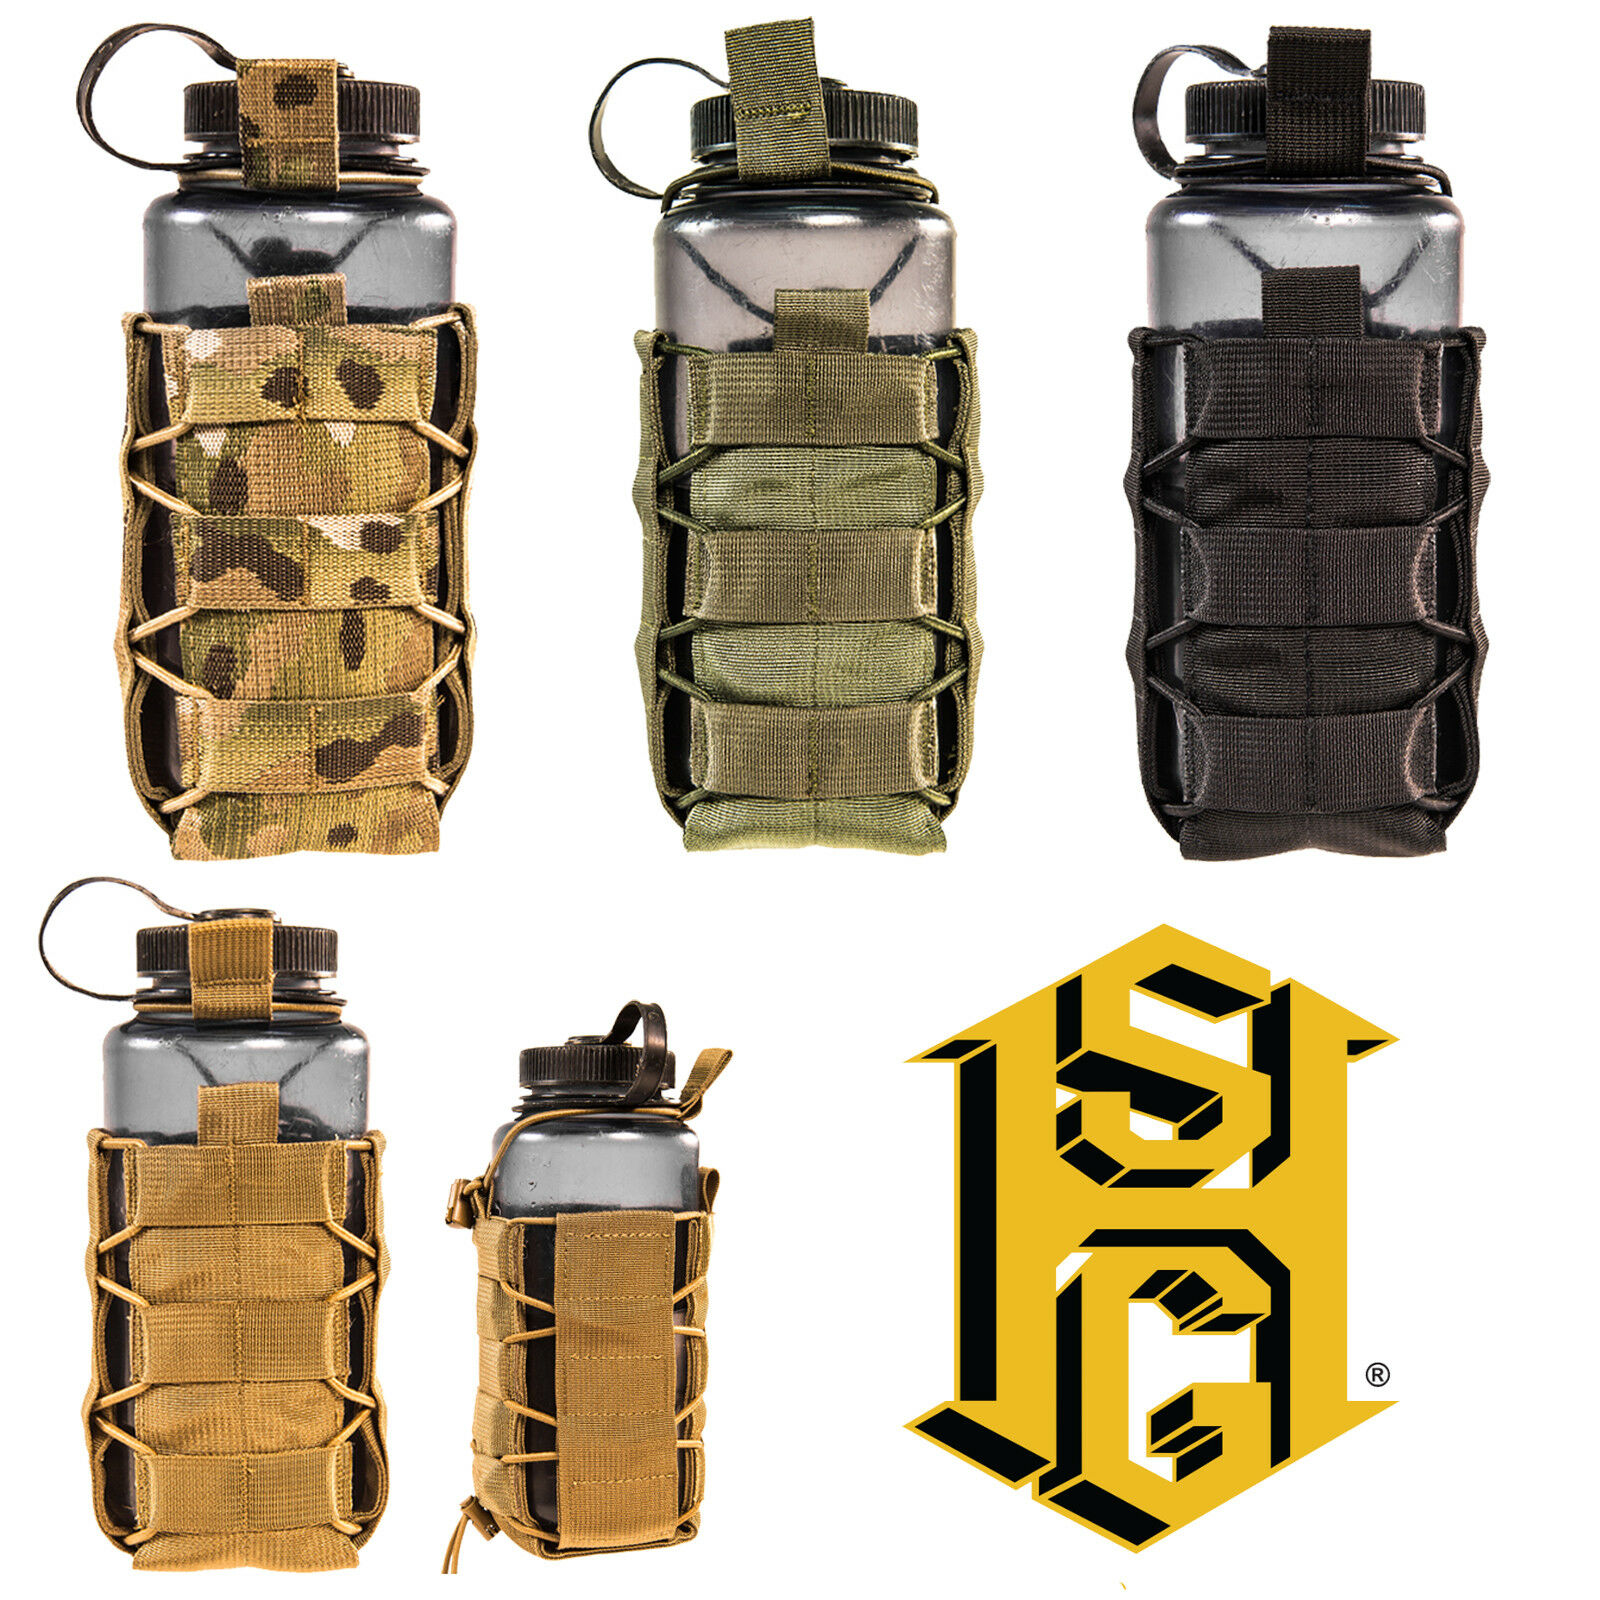 HSGI Tactical MOLLE Belt Mounted SOFT TACO Multi-Purpose Water Bottle Tool Pouch